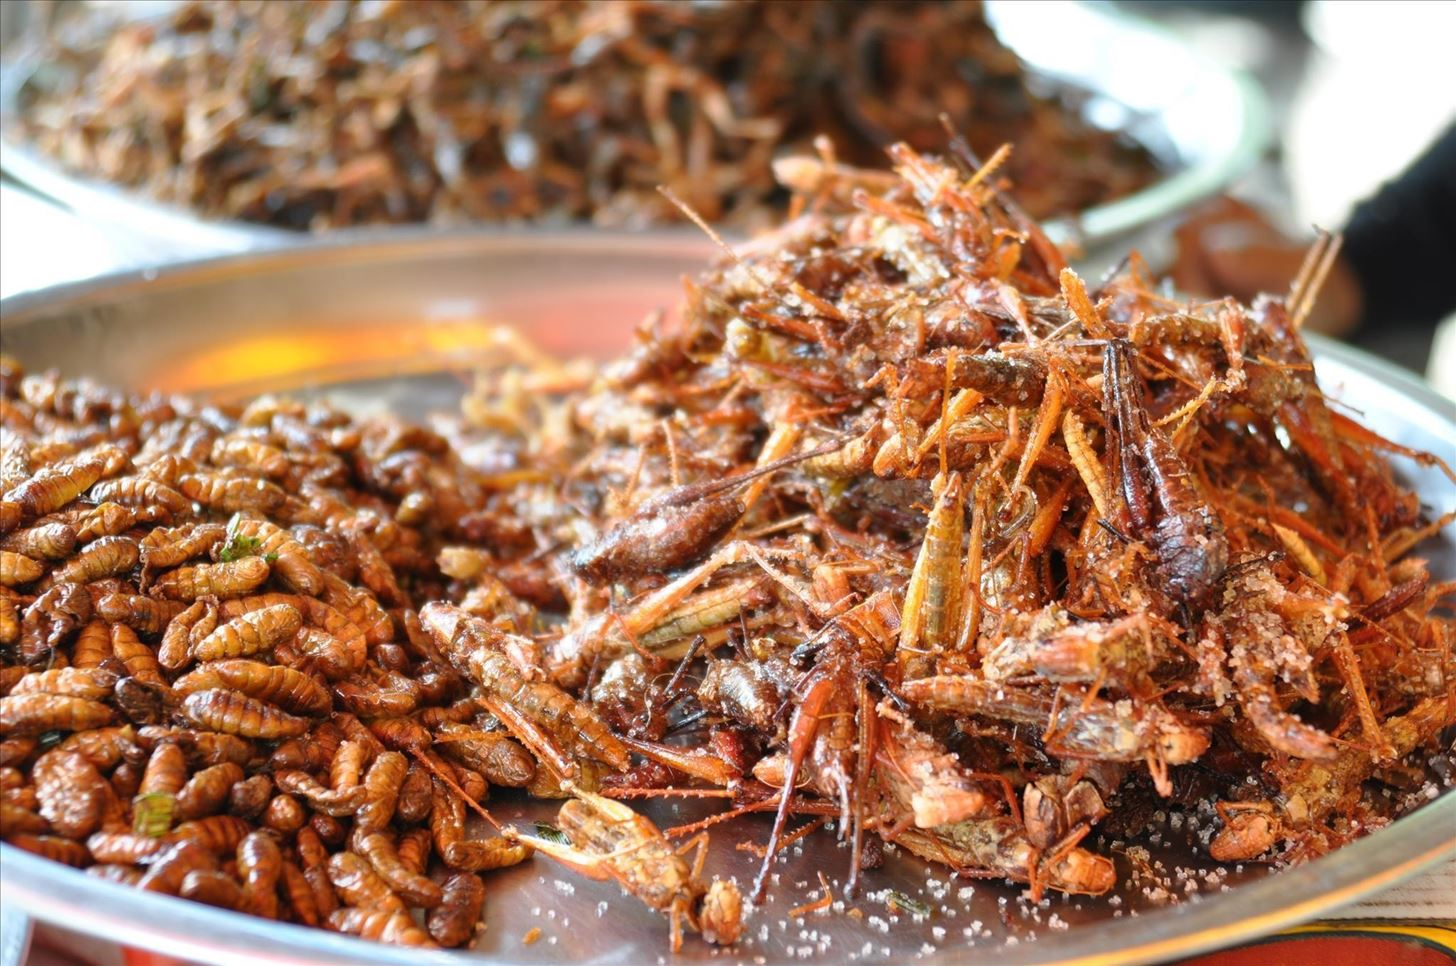 The Intriguing Allure of Eating Crickets